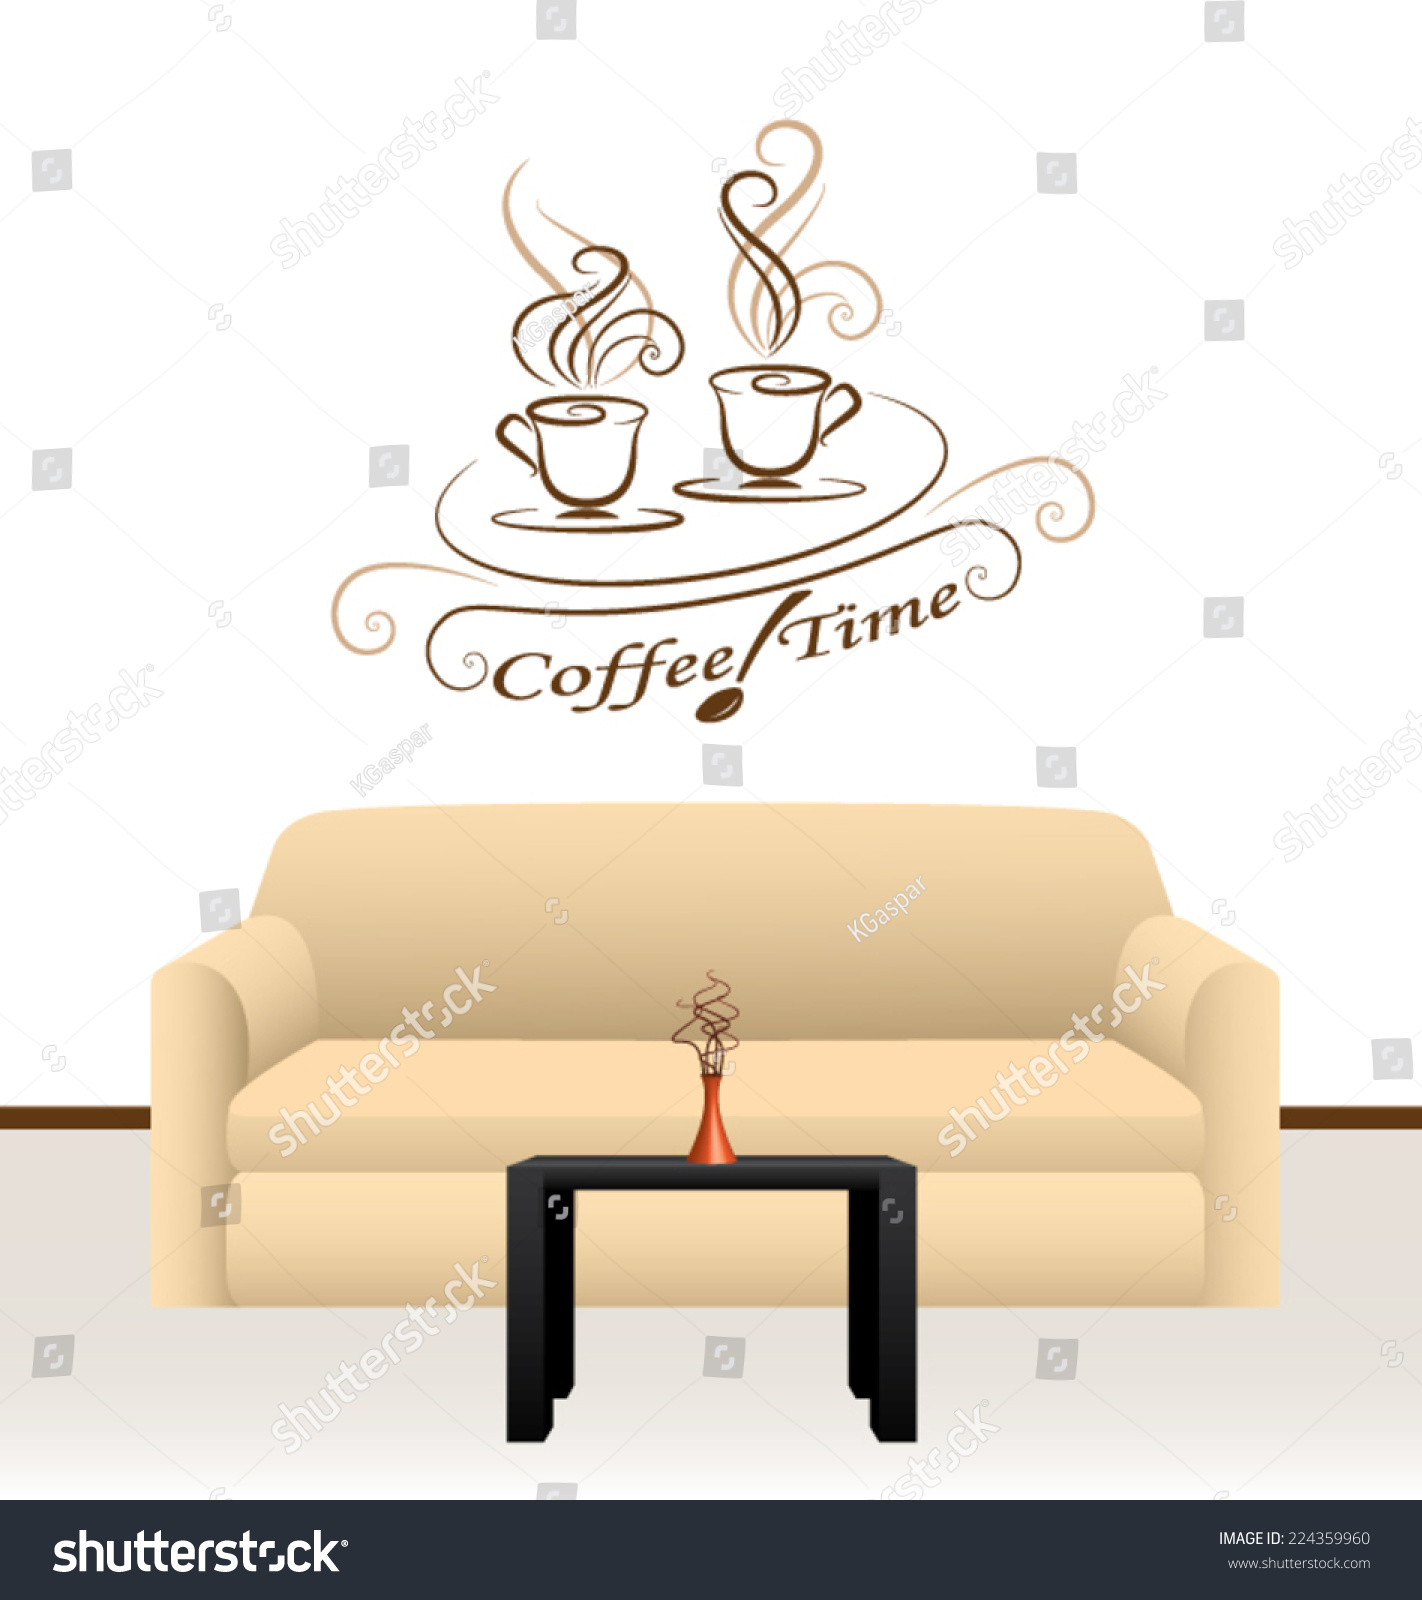 Coffee Time Message Wall Decoration Stock Vector 224359960 ...